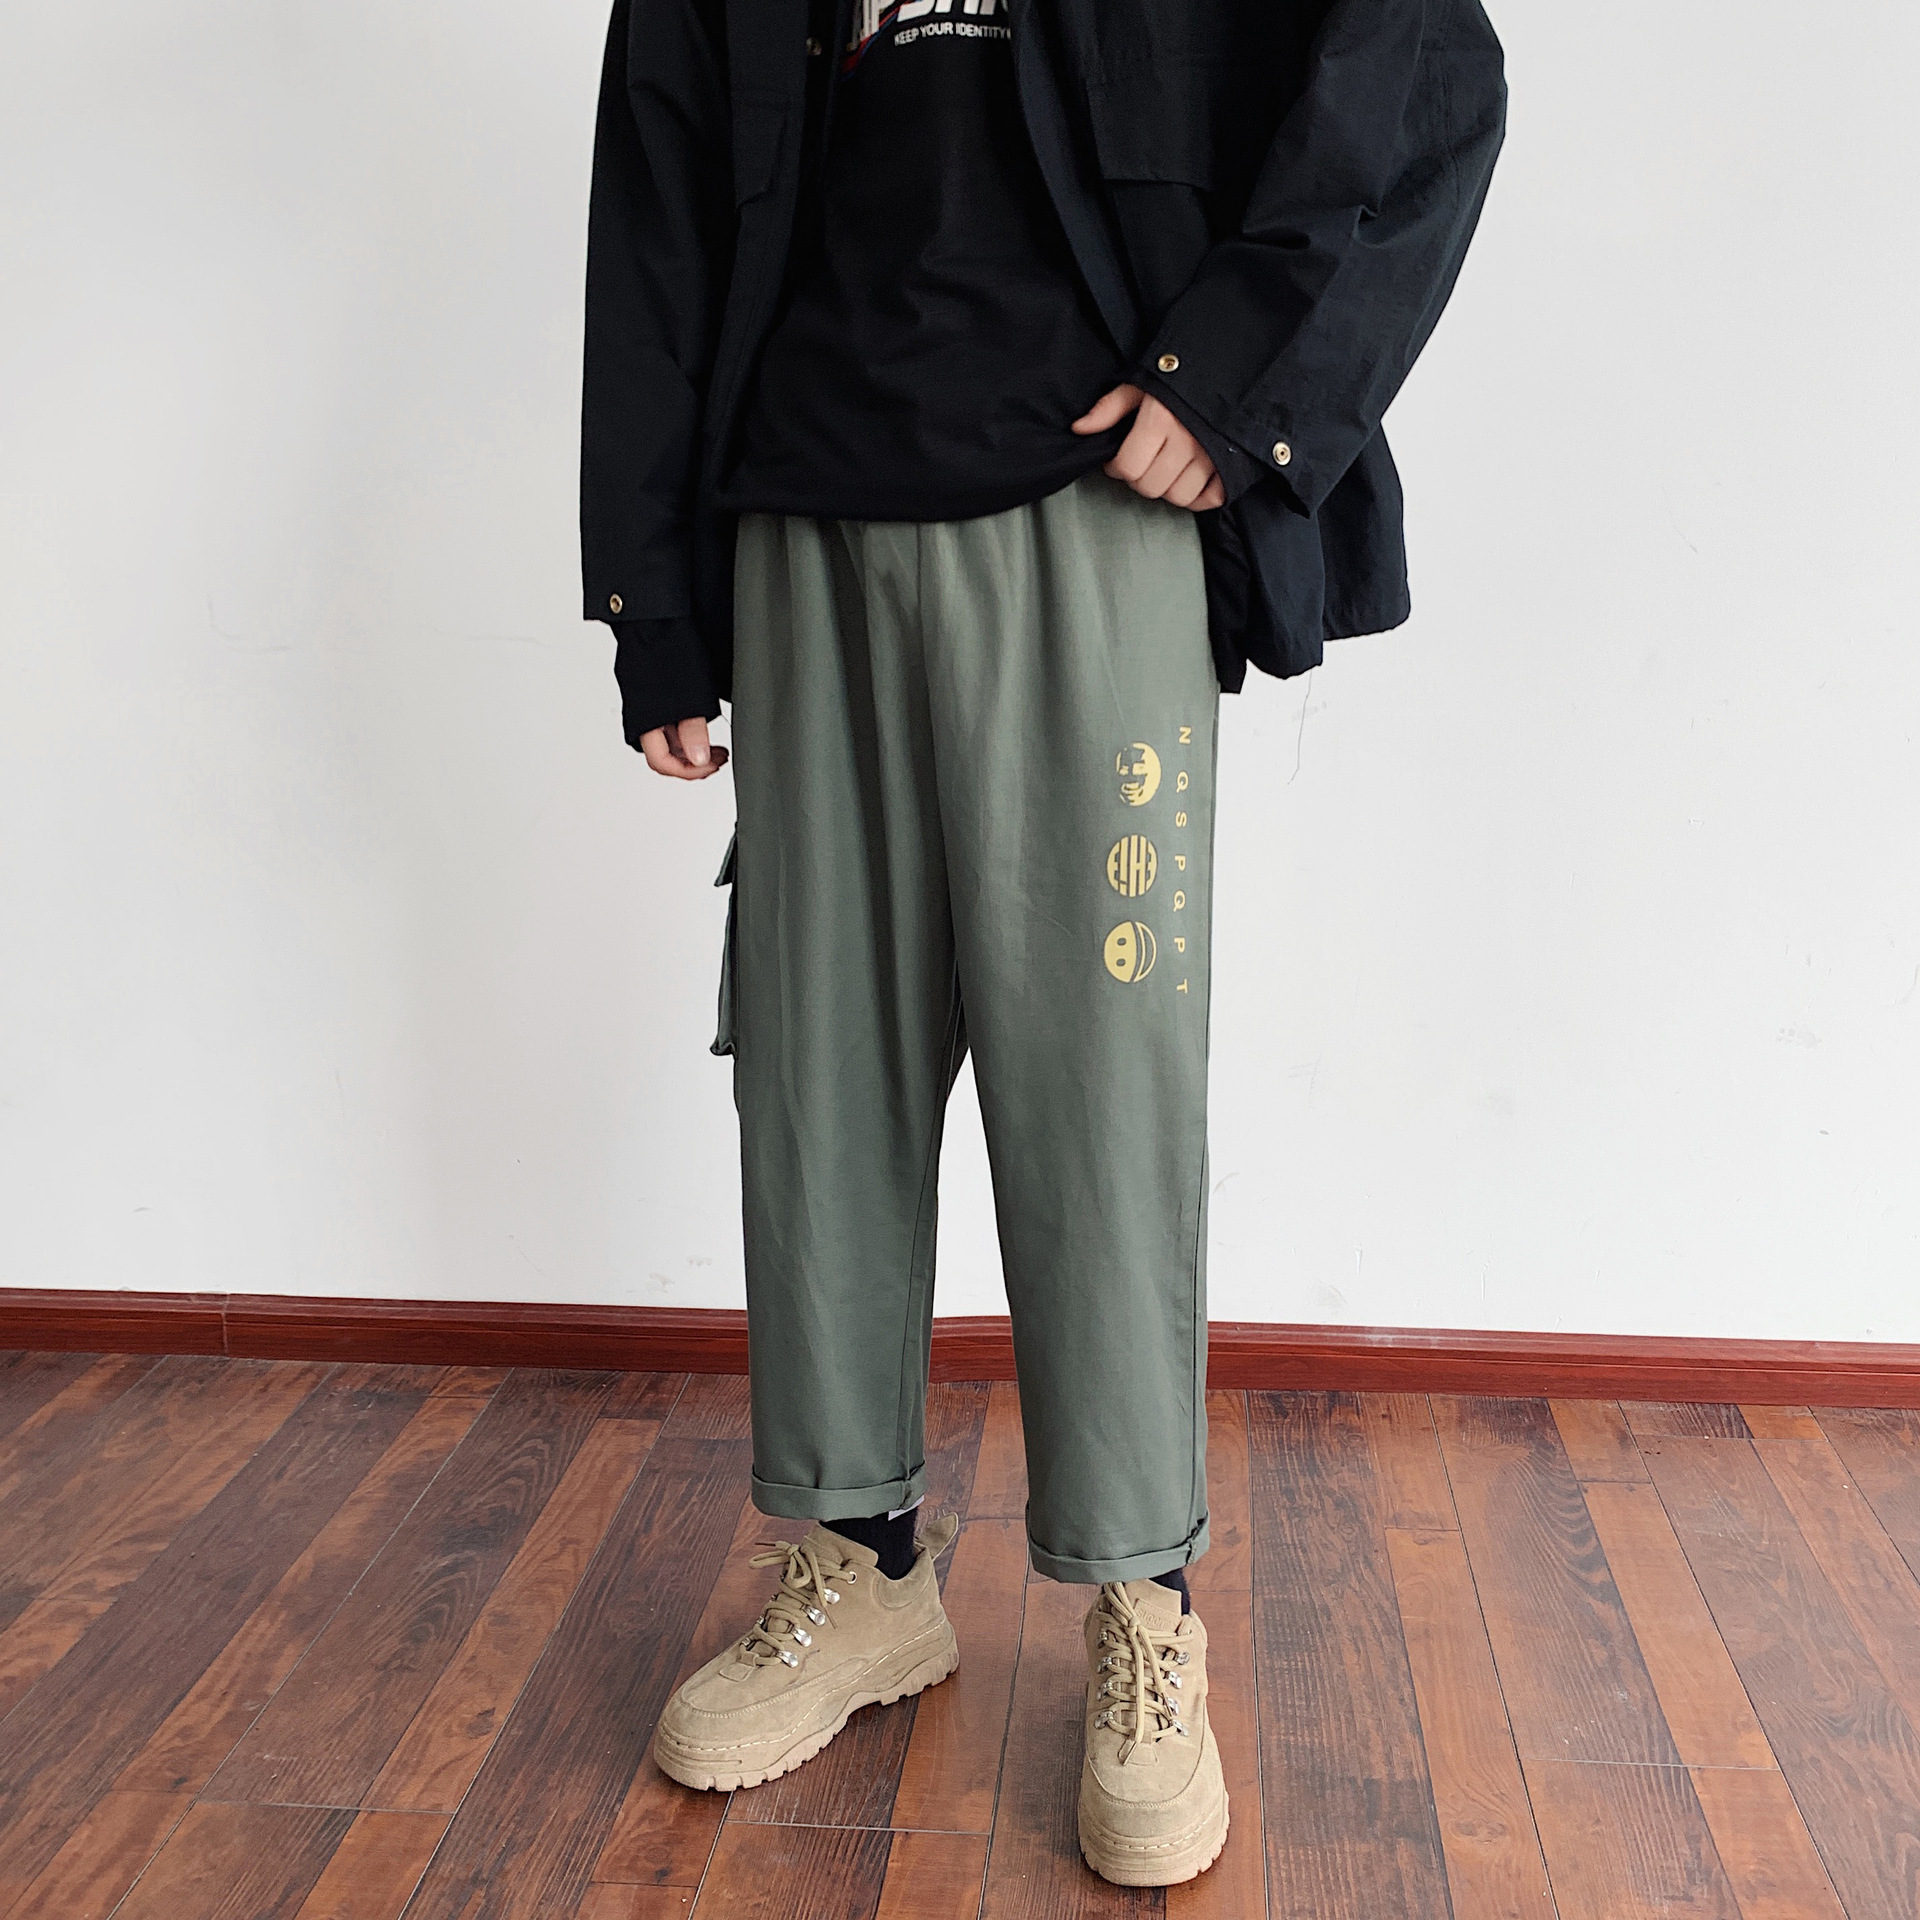 Bib Overall Men Popular Brand Loose-Fit Straight-leg Pants Spring And Autumn INS Super Fire Korean-style Trend Students Casual P